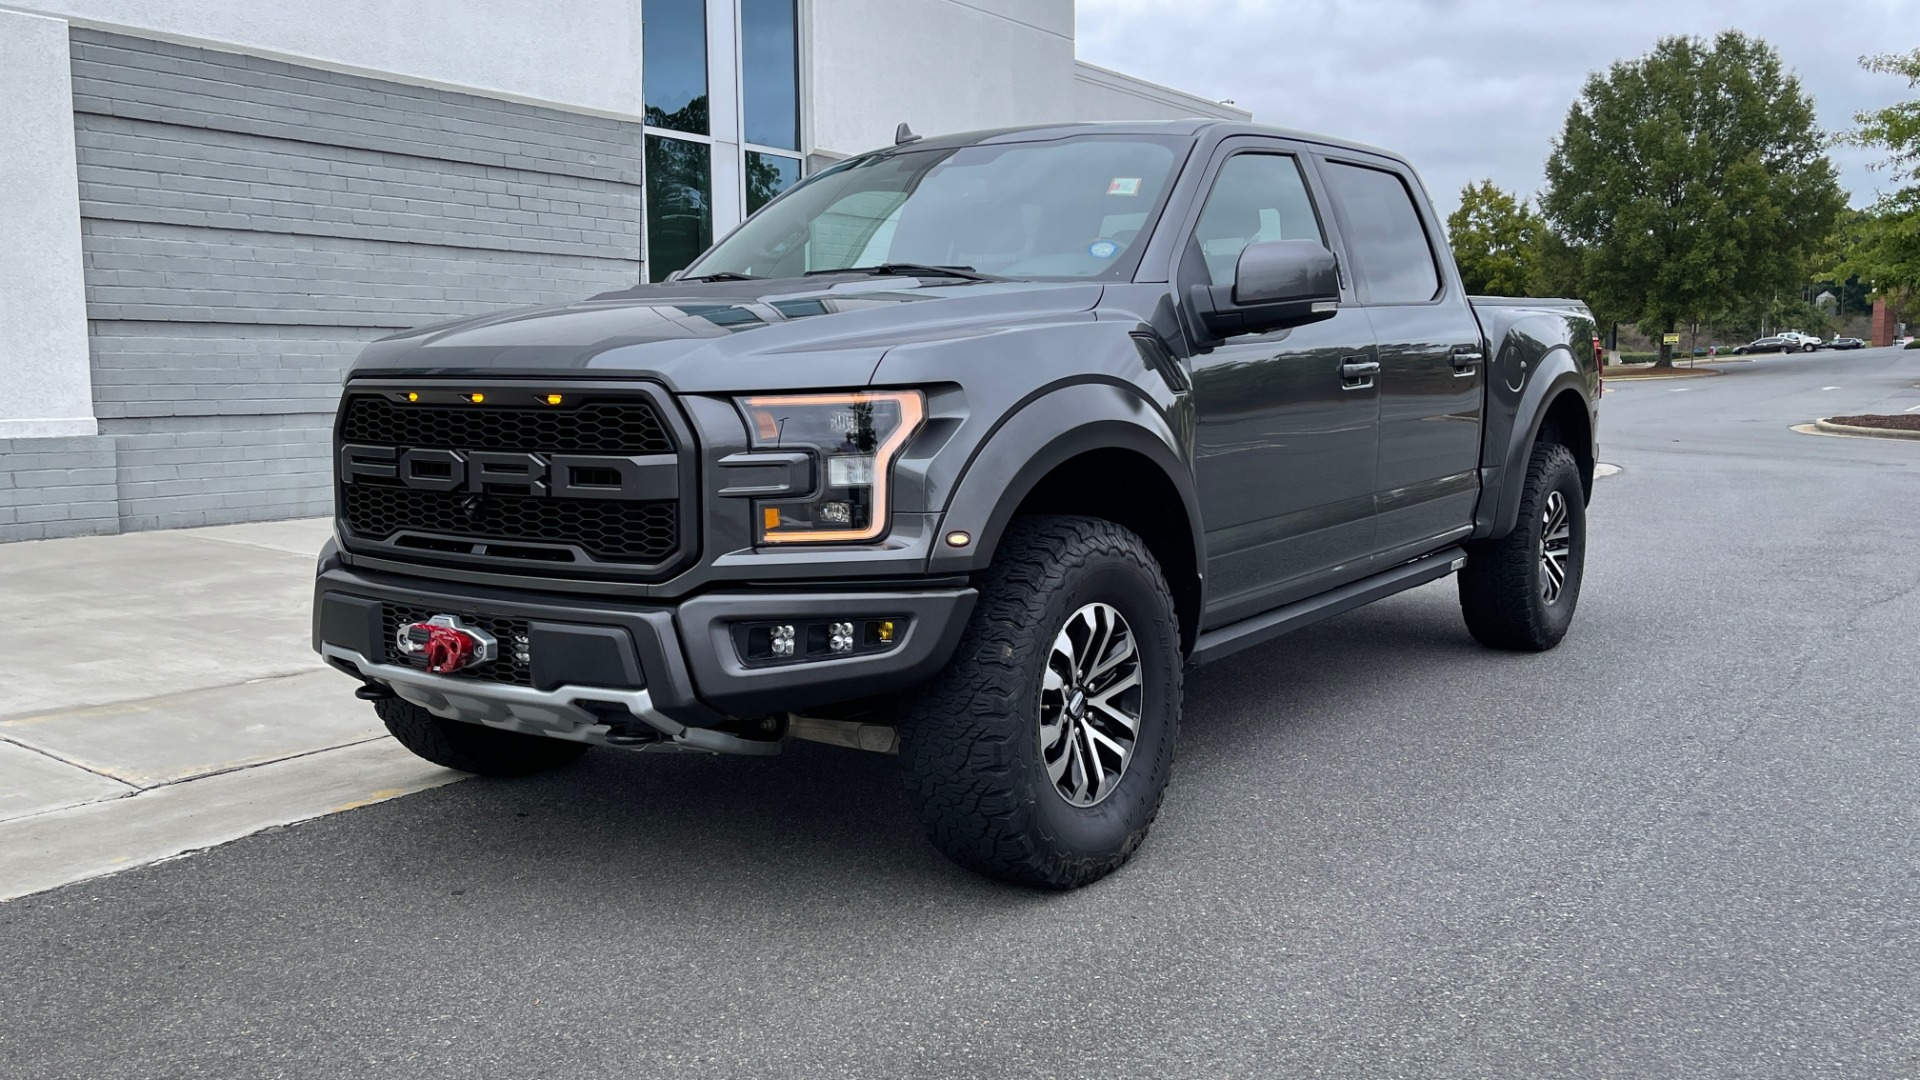 Used 2020 Ford F-150 RAPTOR 4X4 SUPERCREW / NAV / B&O SOUND / SUNROOF / REARVIEW for sale $74,900 at Formula Imports in Charlotte NC 28227 2